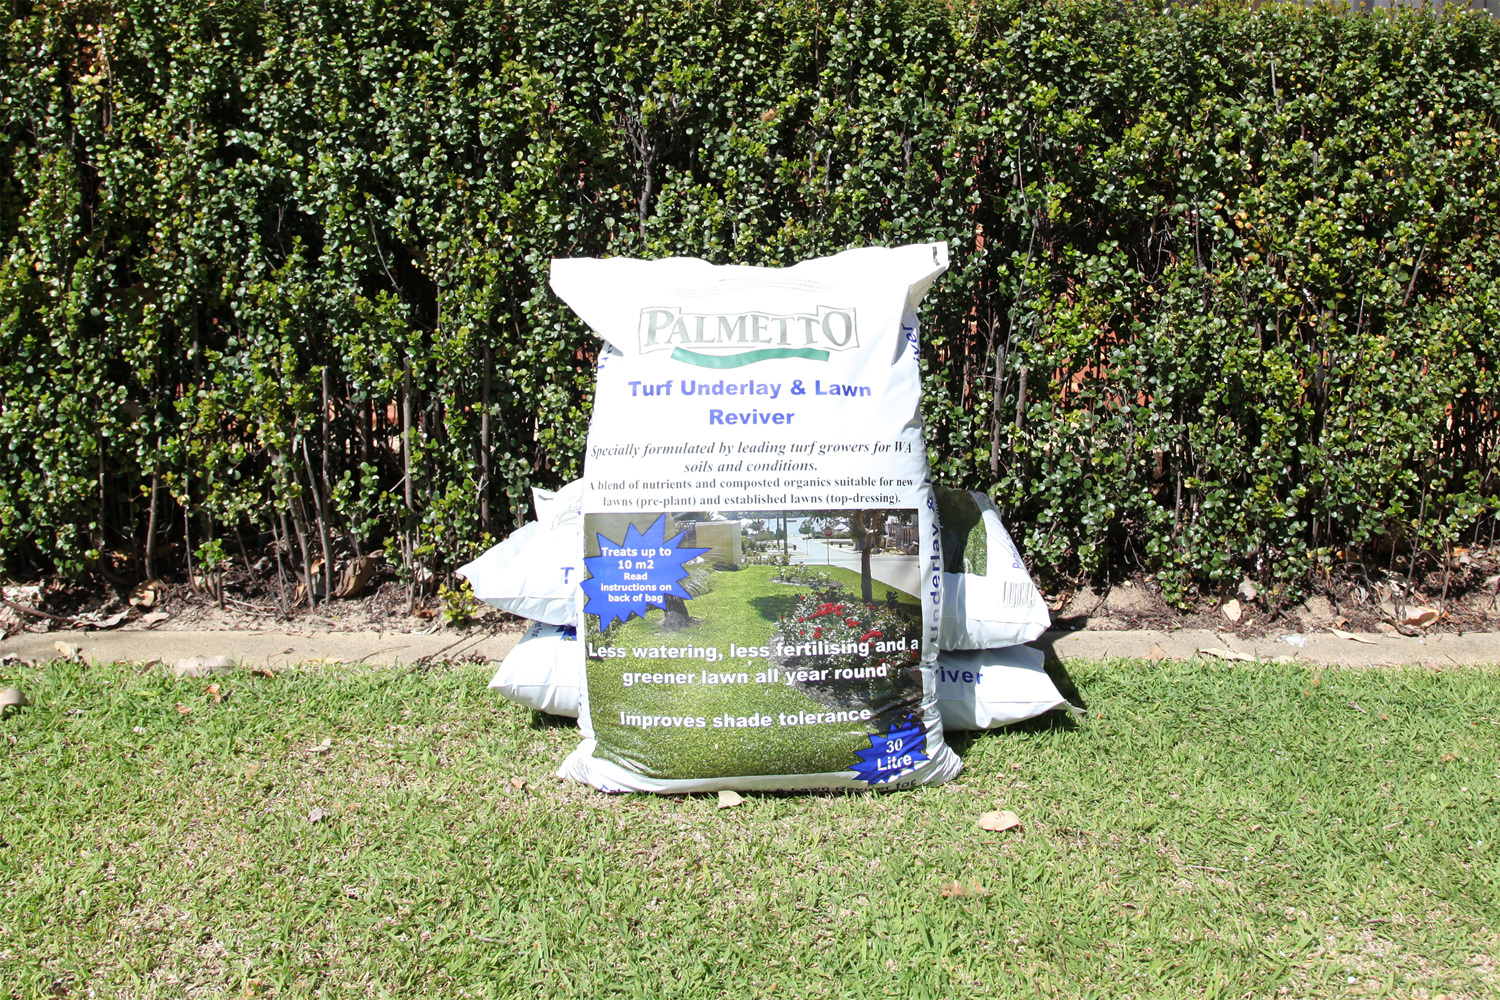 Palmetto Underlay and Lawn reviver